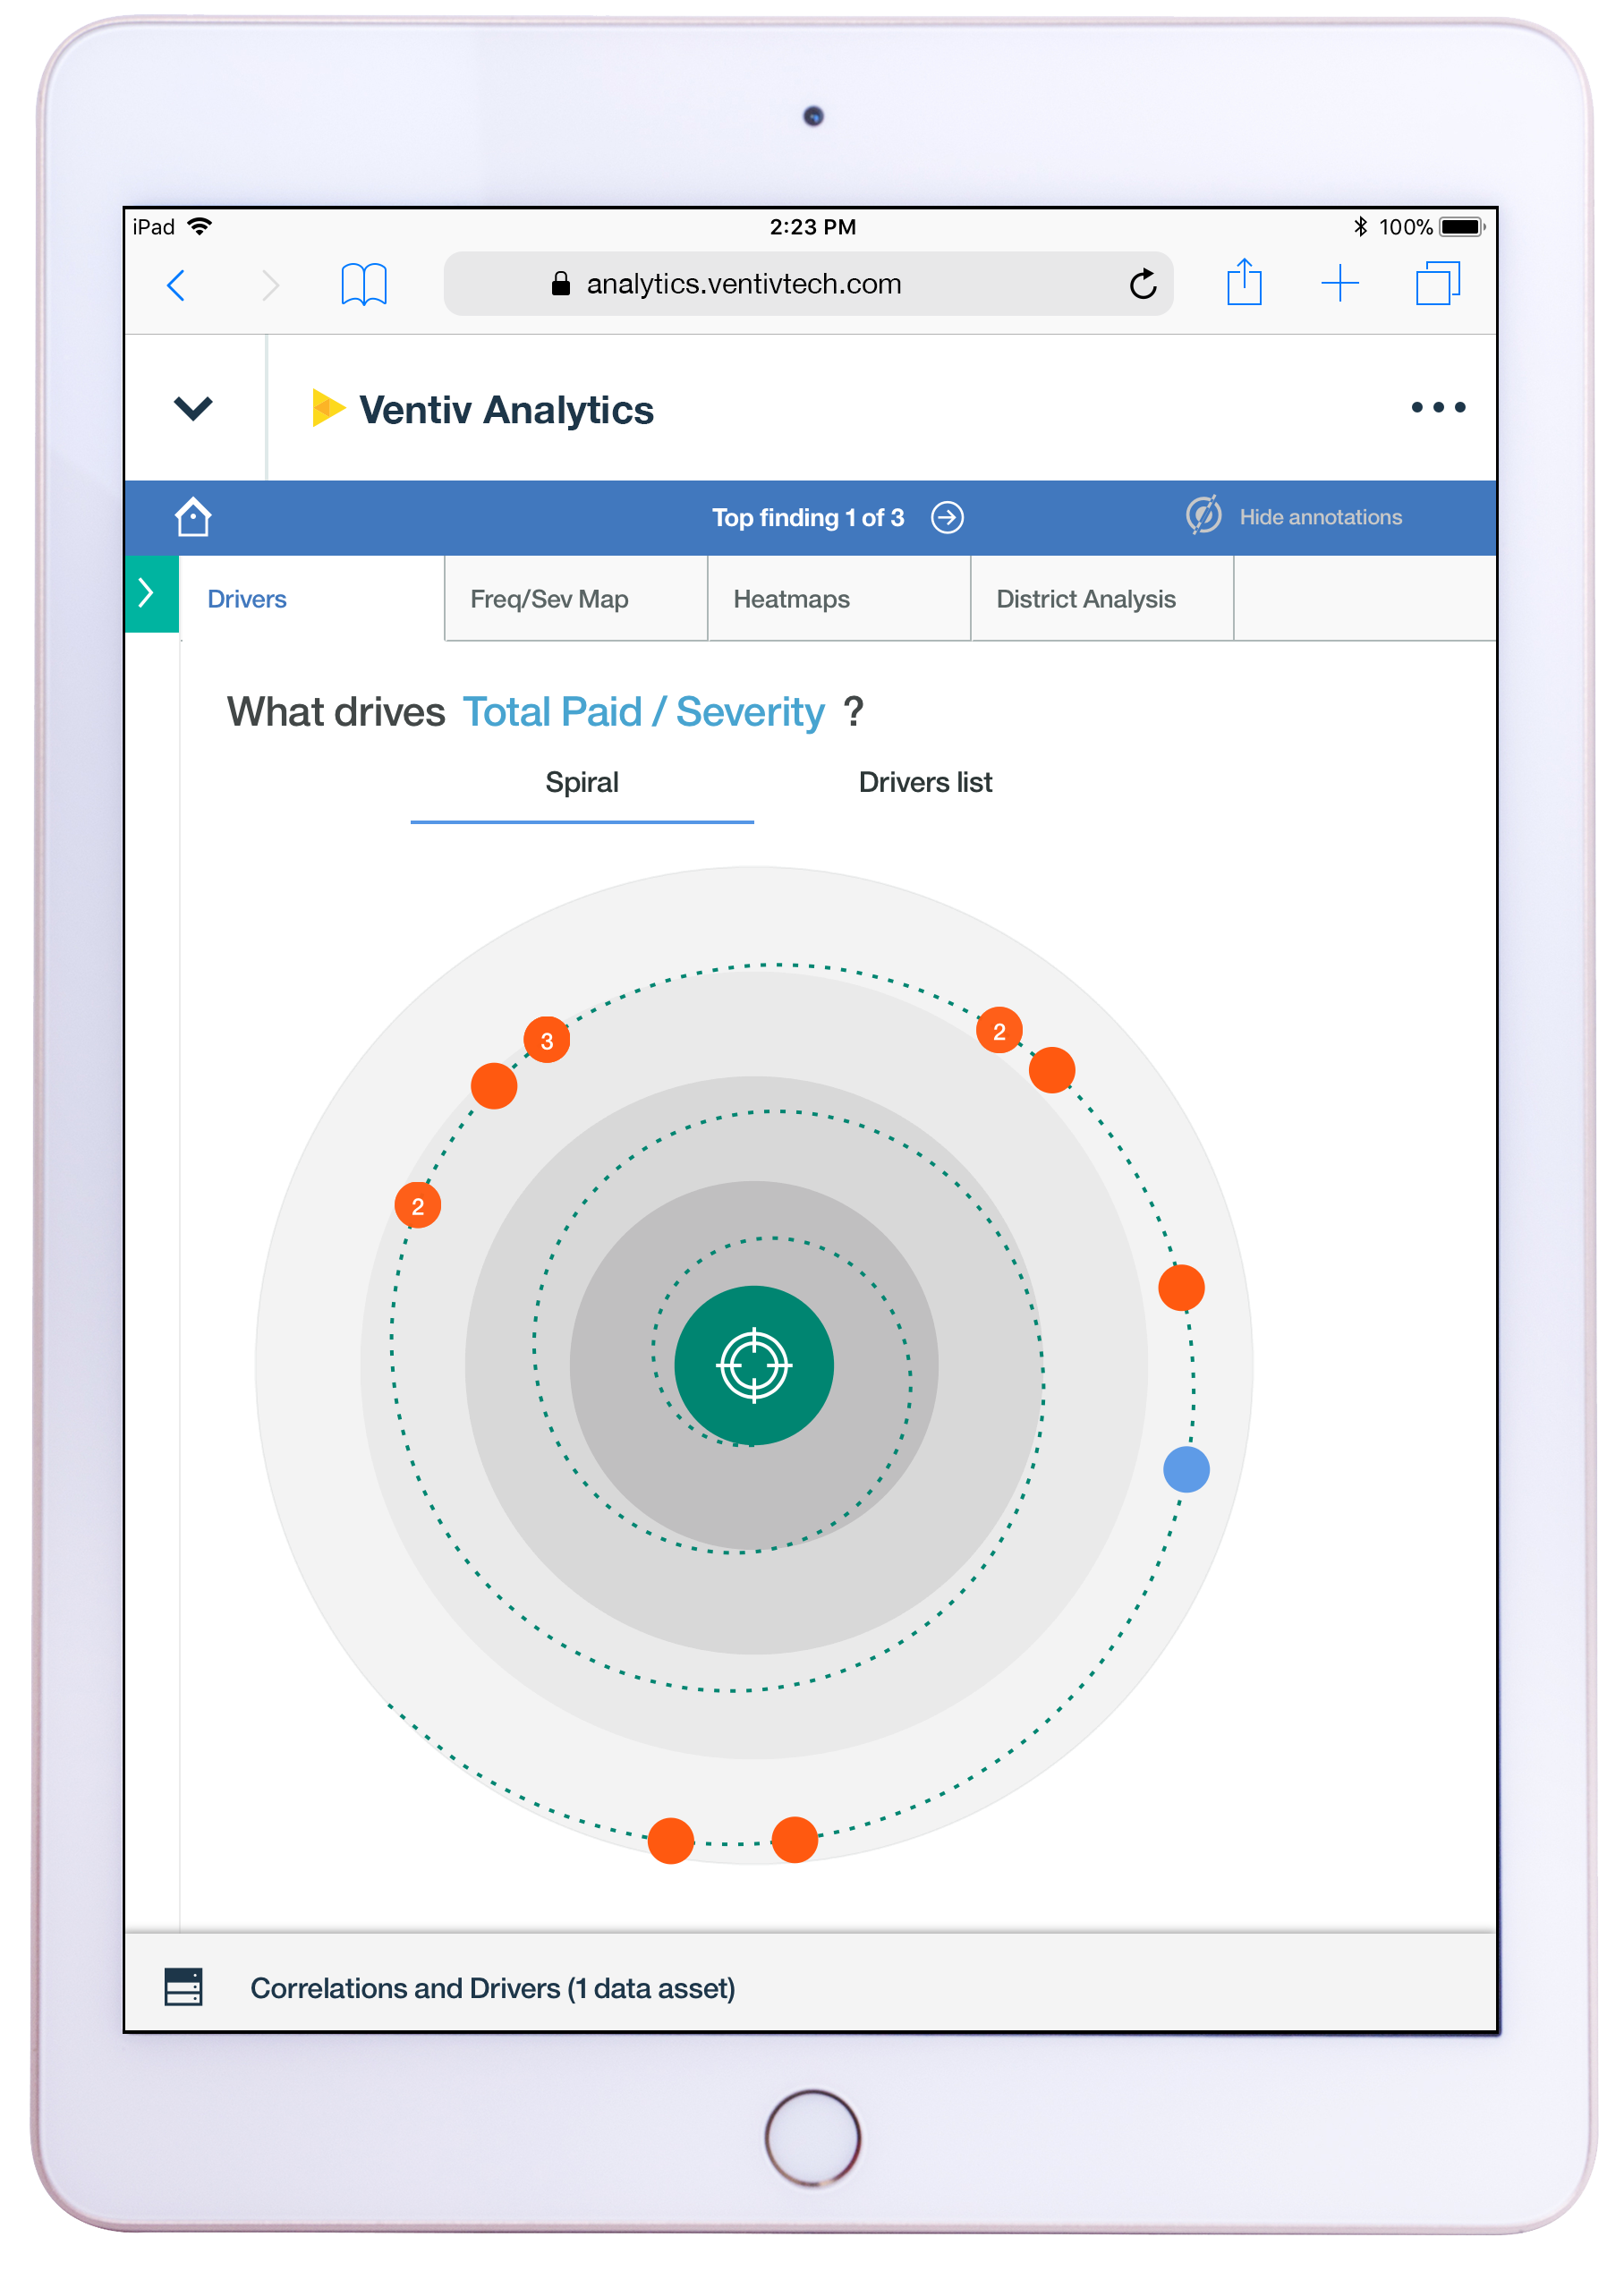 Ventiv Analytics